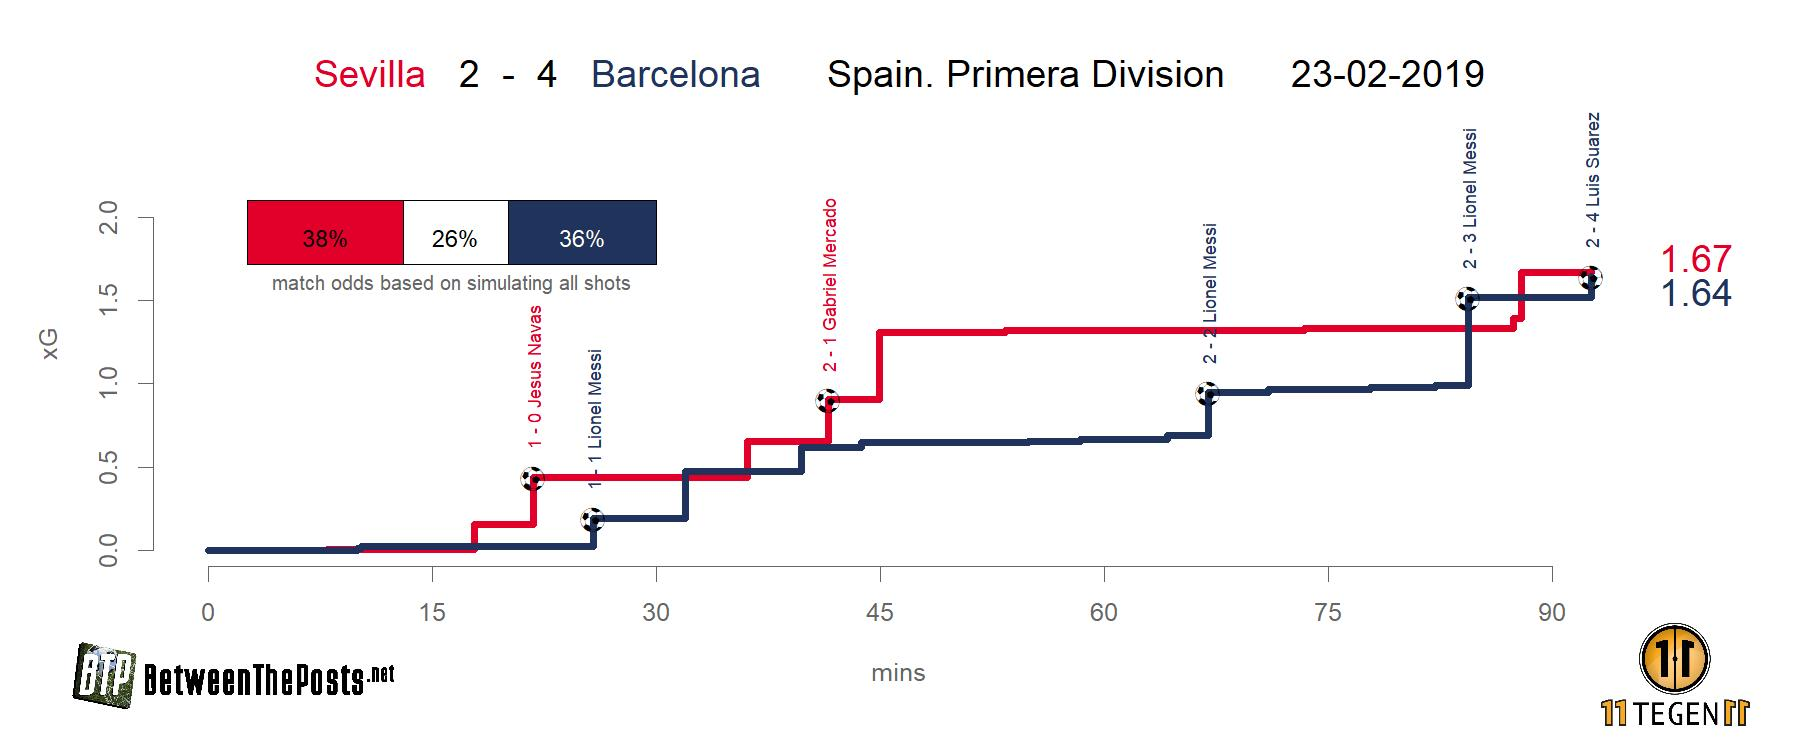 Expected goals plot Sevilla - Barcelona 2-4 LaLiga